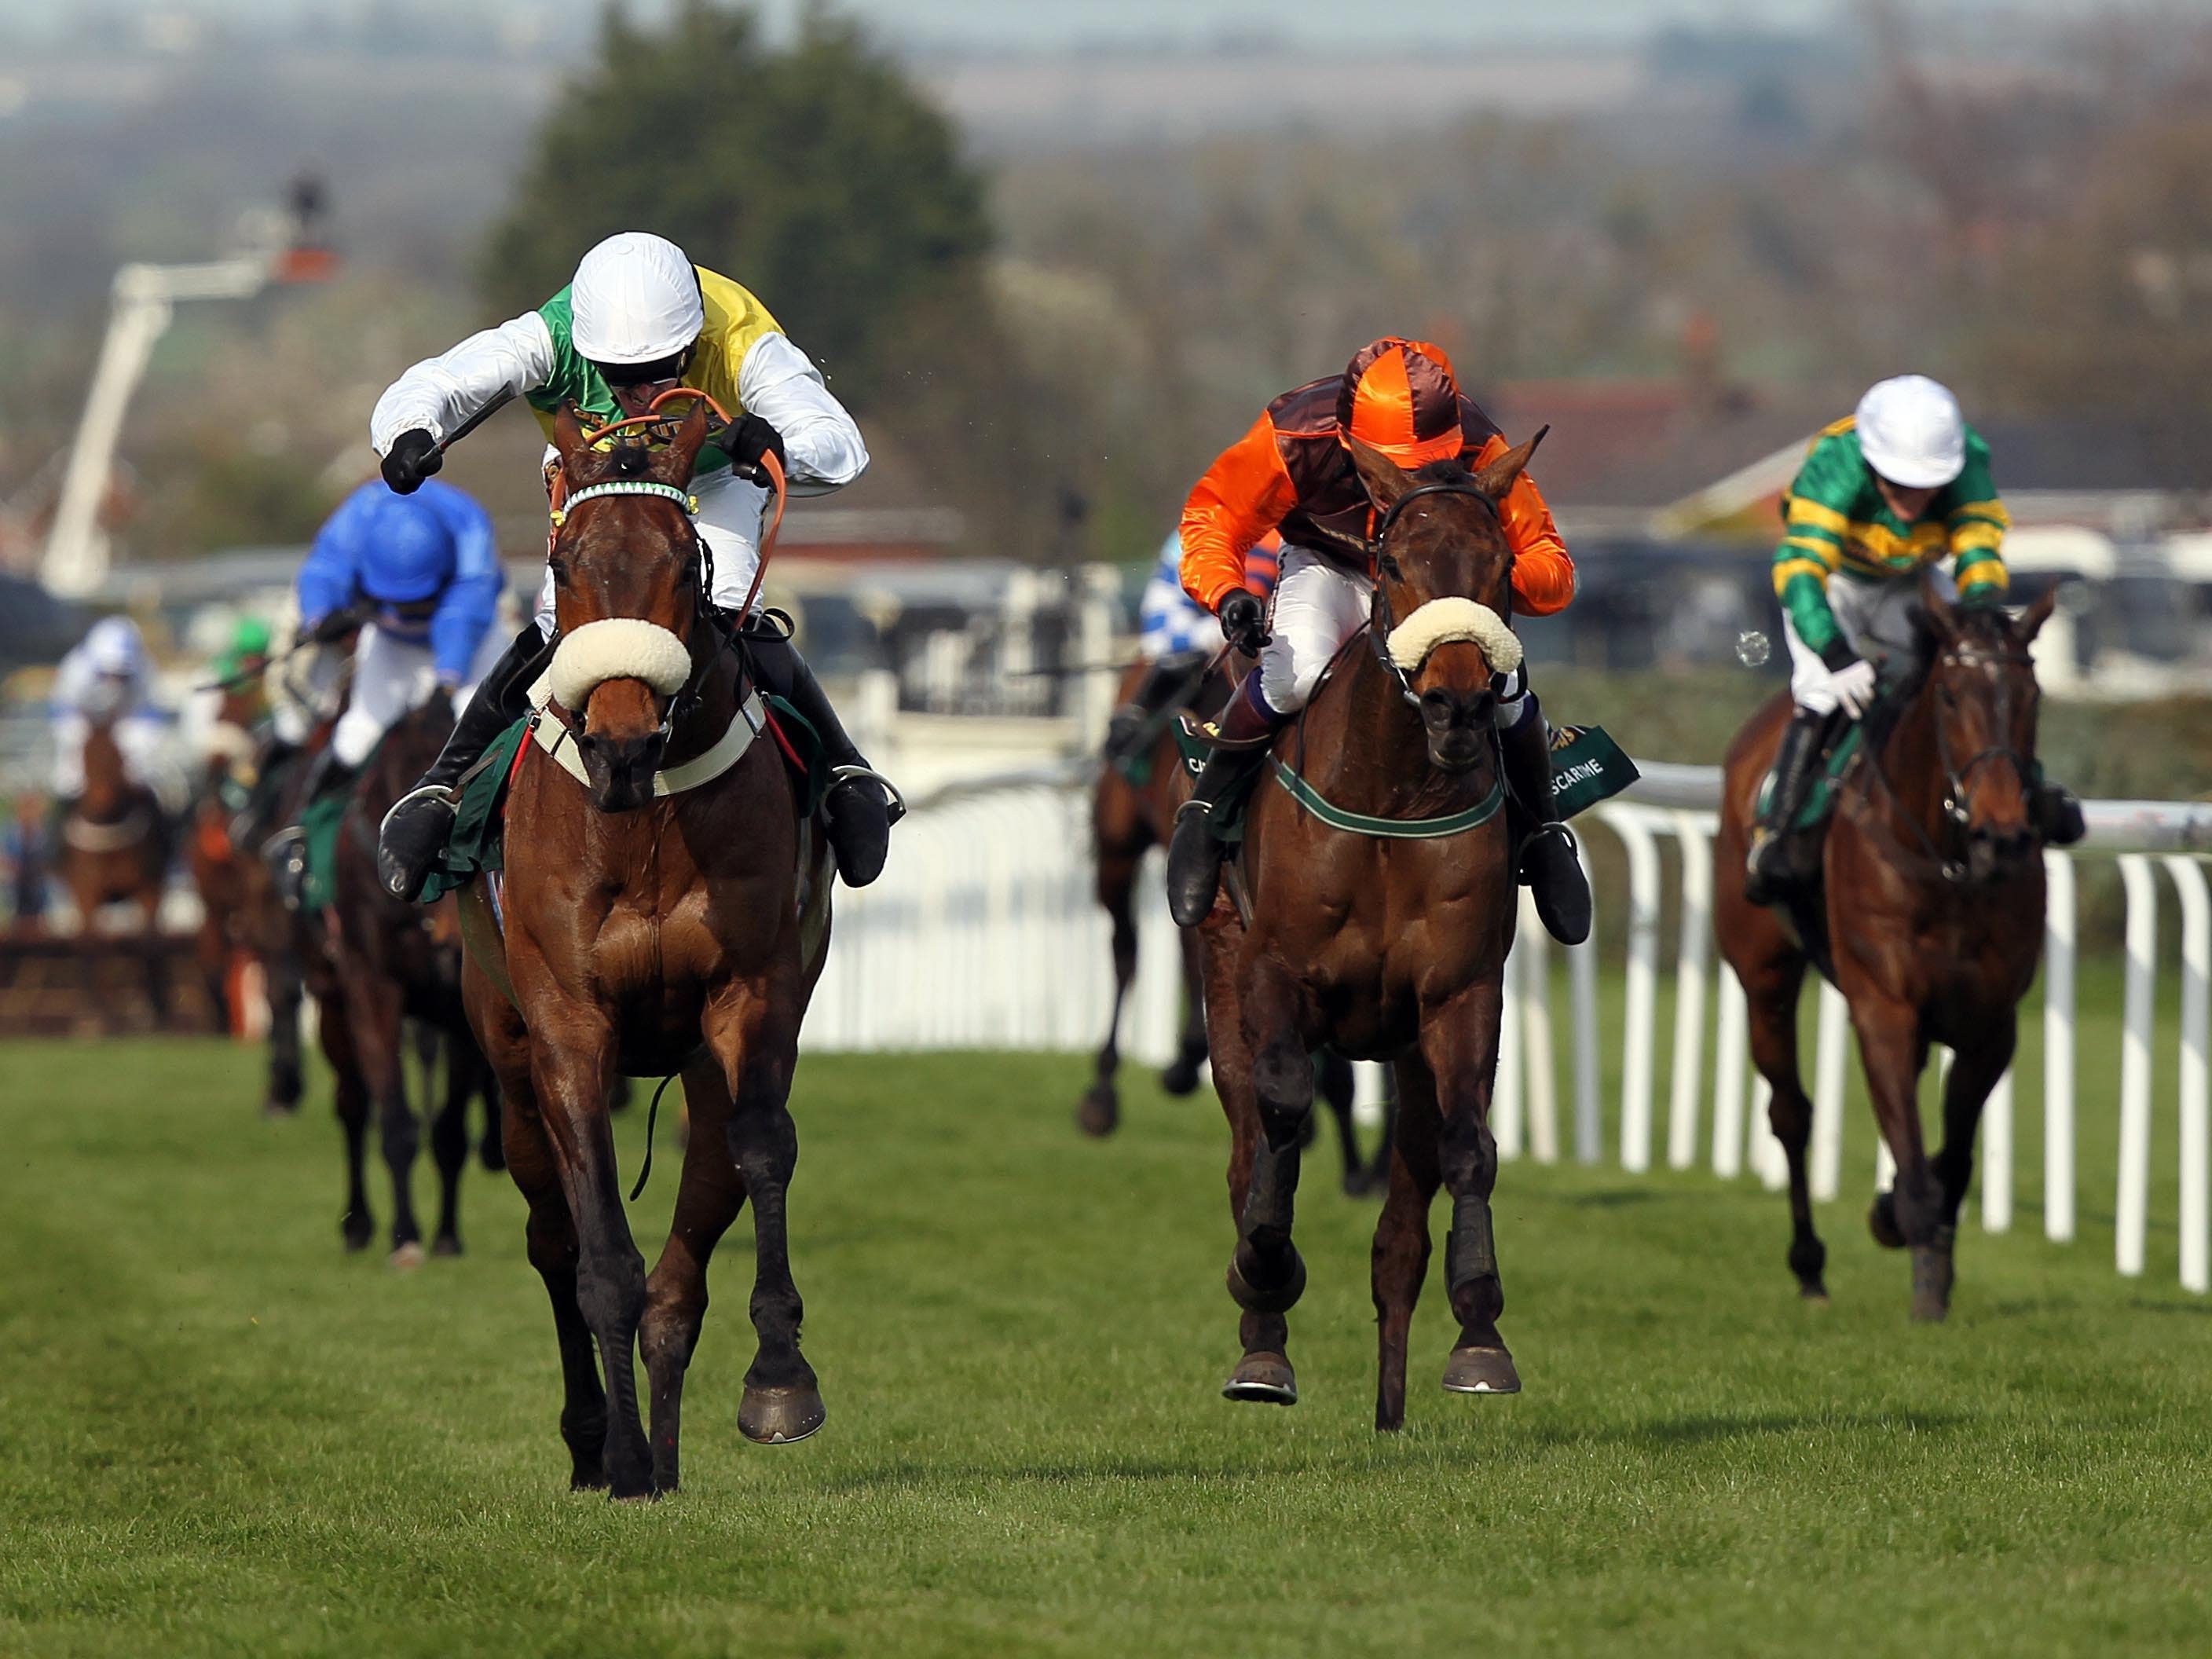 Ballabriggs, ridden by Jason Maguire (left), winning the 2011 Grand National (David Davies/PA)